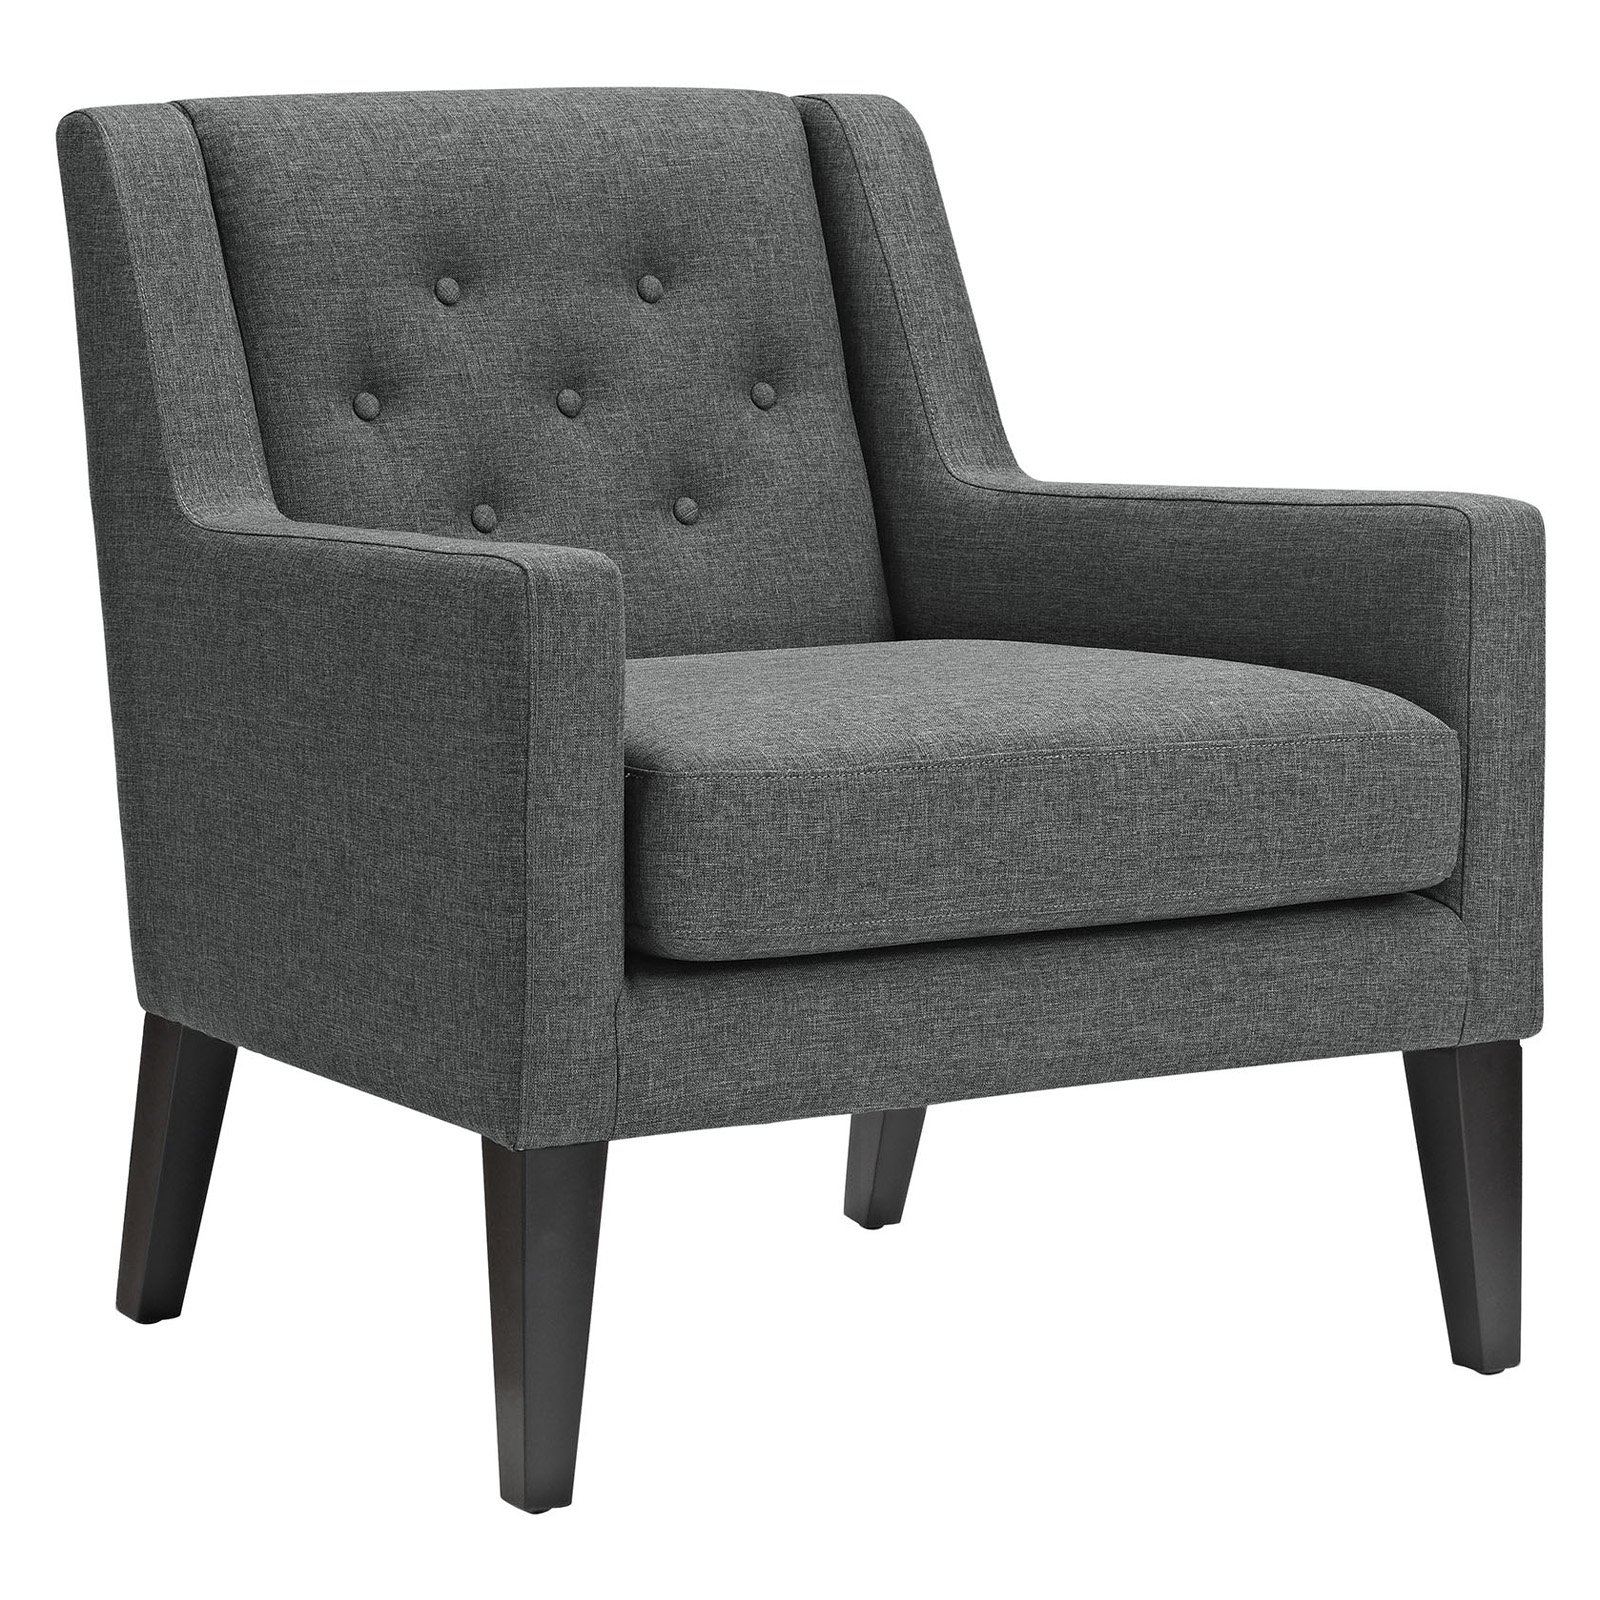 Modway Earnest Upholstered Armchair, Multiple Colors by Modway